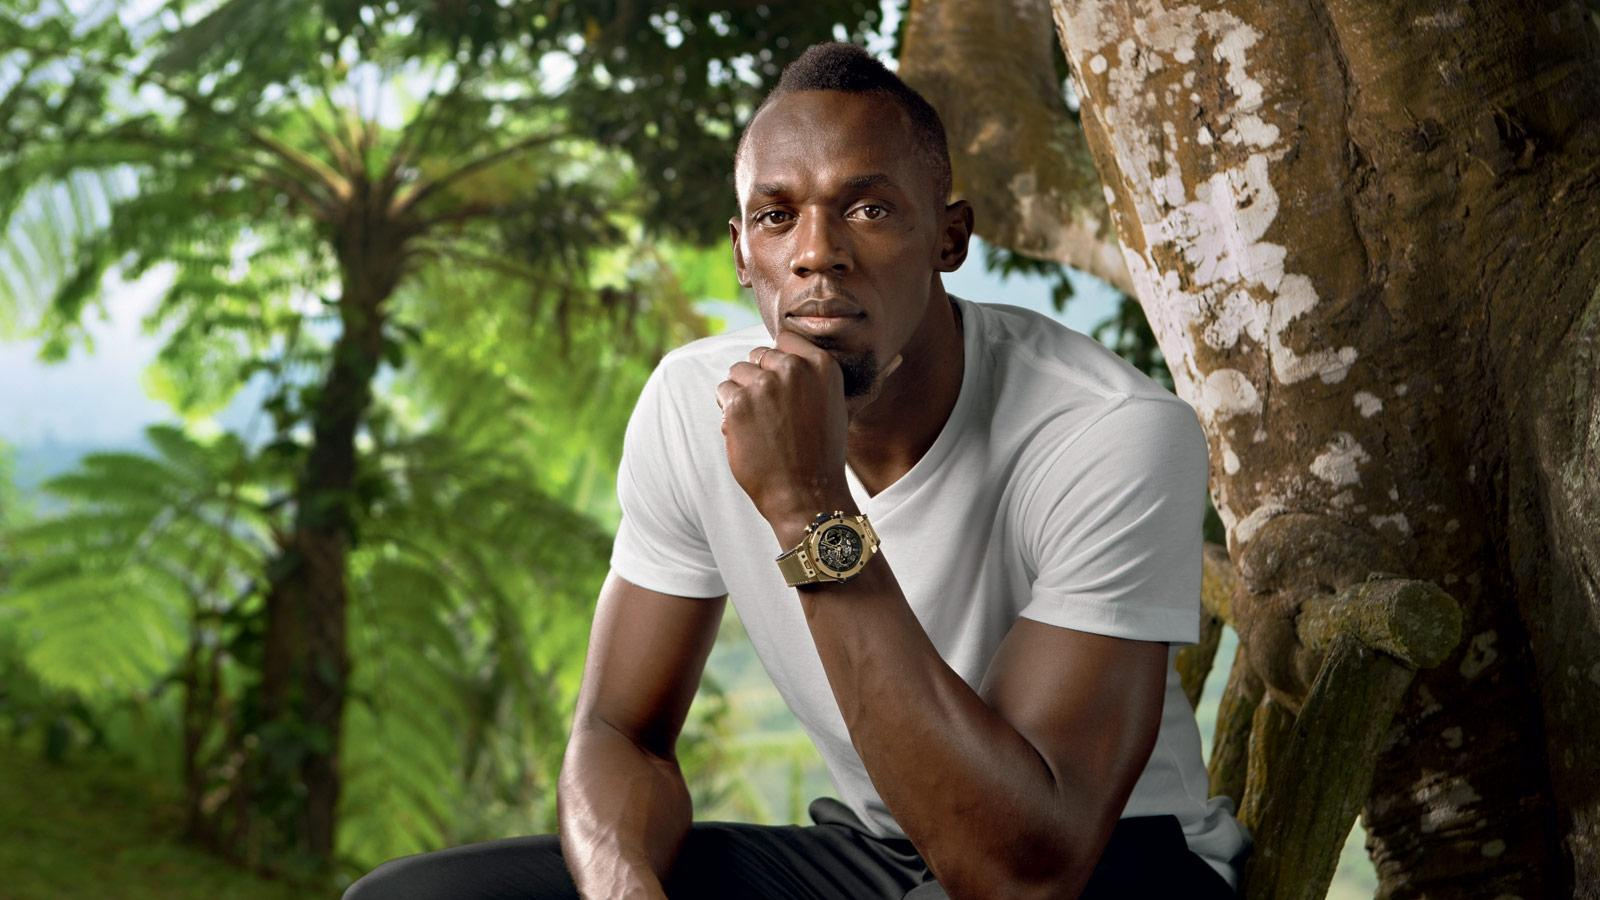 Usain Bolt with Hublot watch hi-res